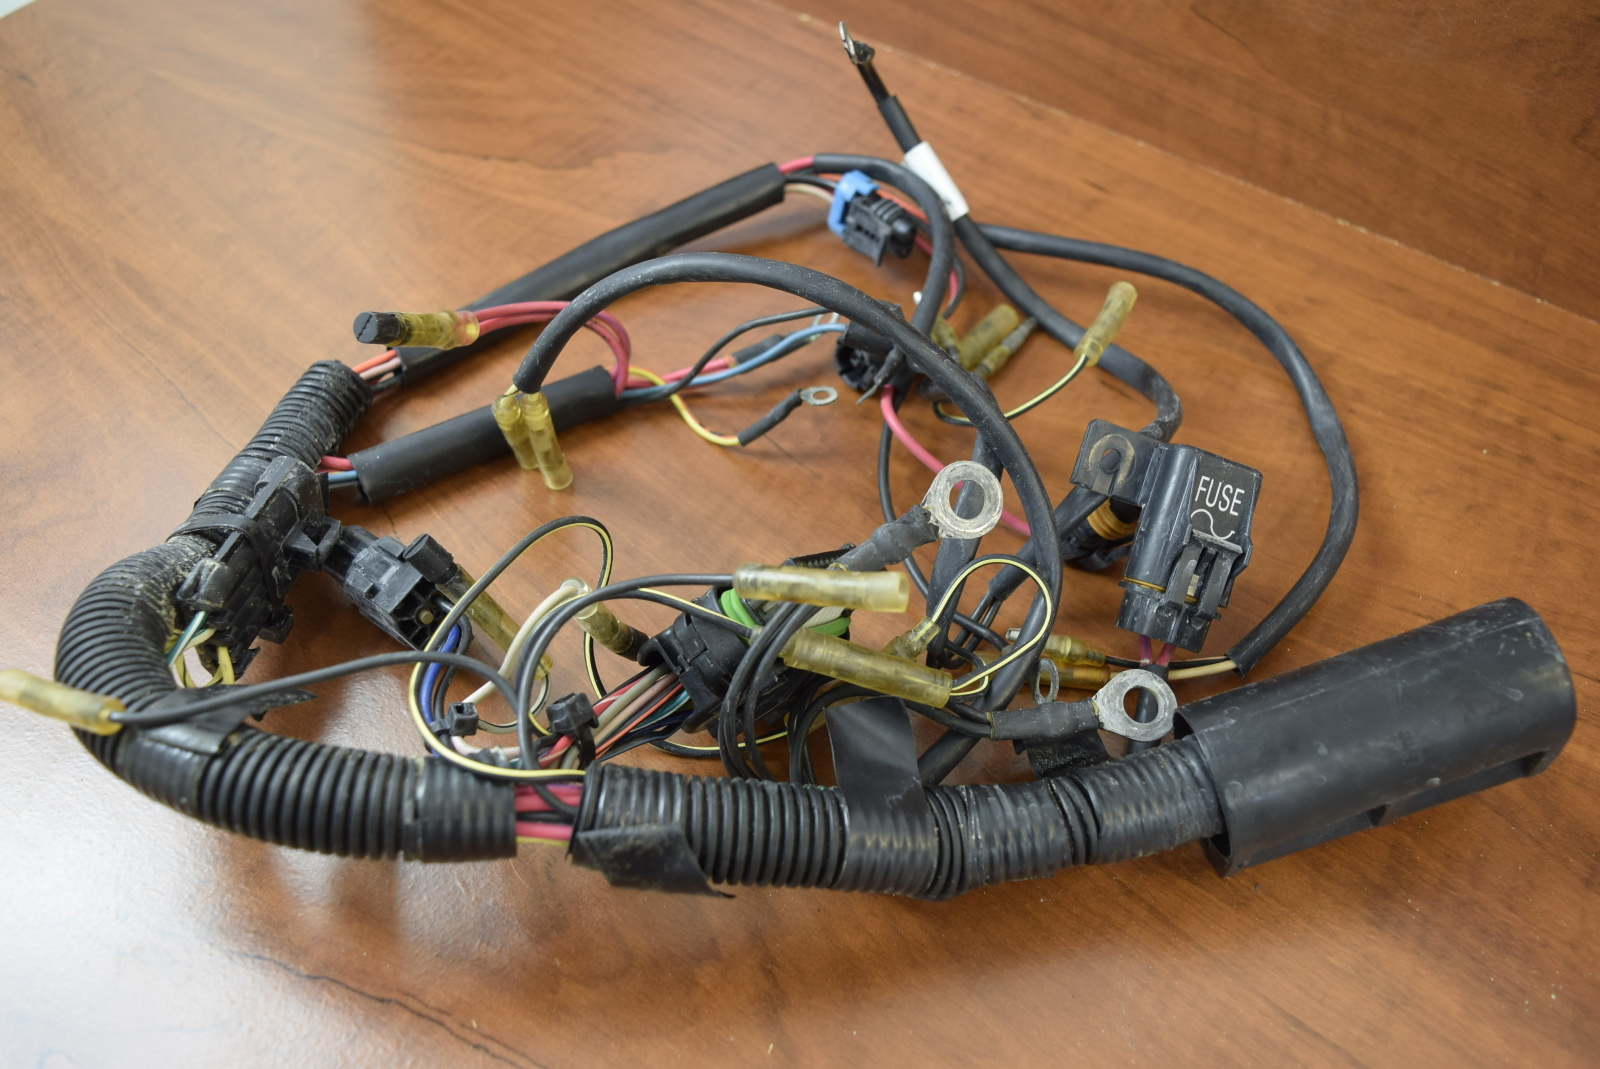 mercury mariner engine wiring harness 1999 2006 25 hp 4 stroke mercury mariner engine wiring harness 1999 2006 25 hp 4 stroke 859202t2